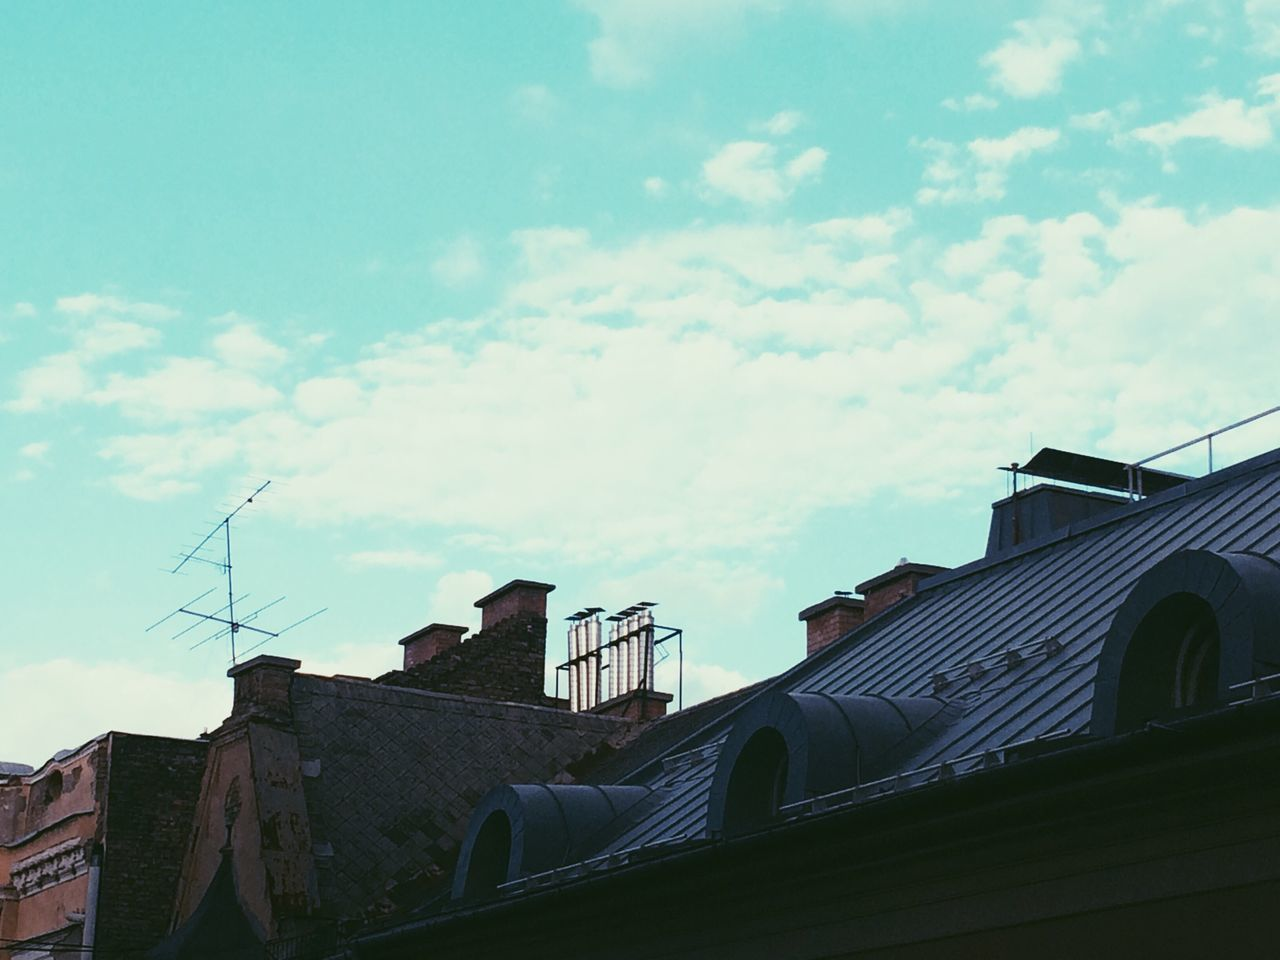 High section of houses against sky